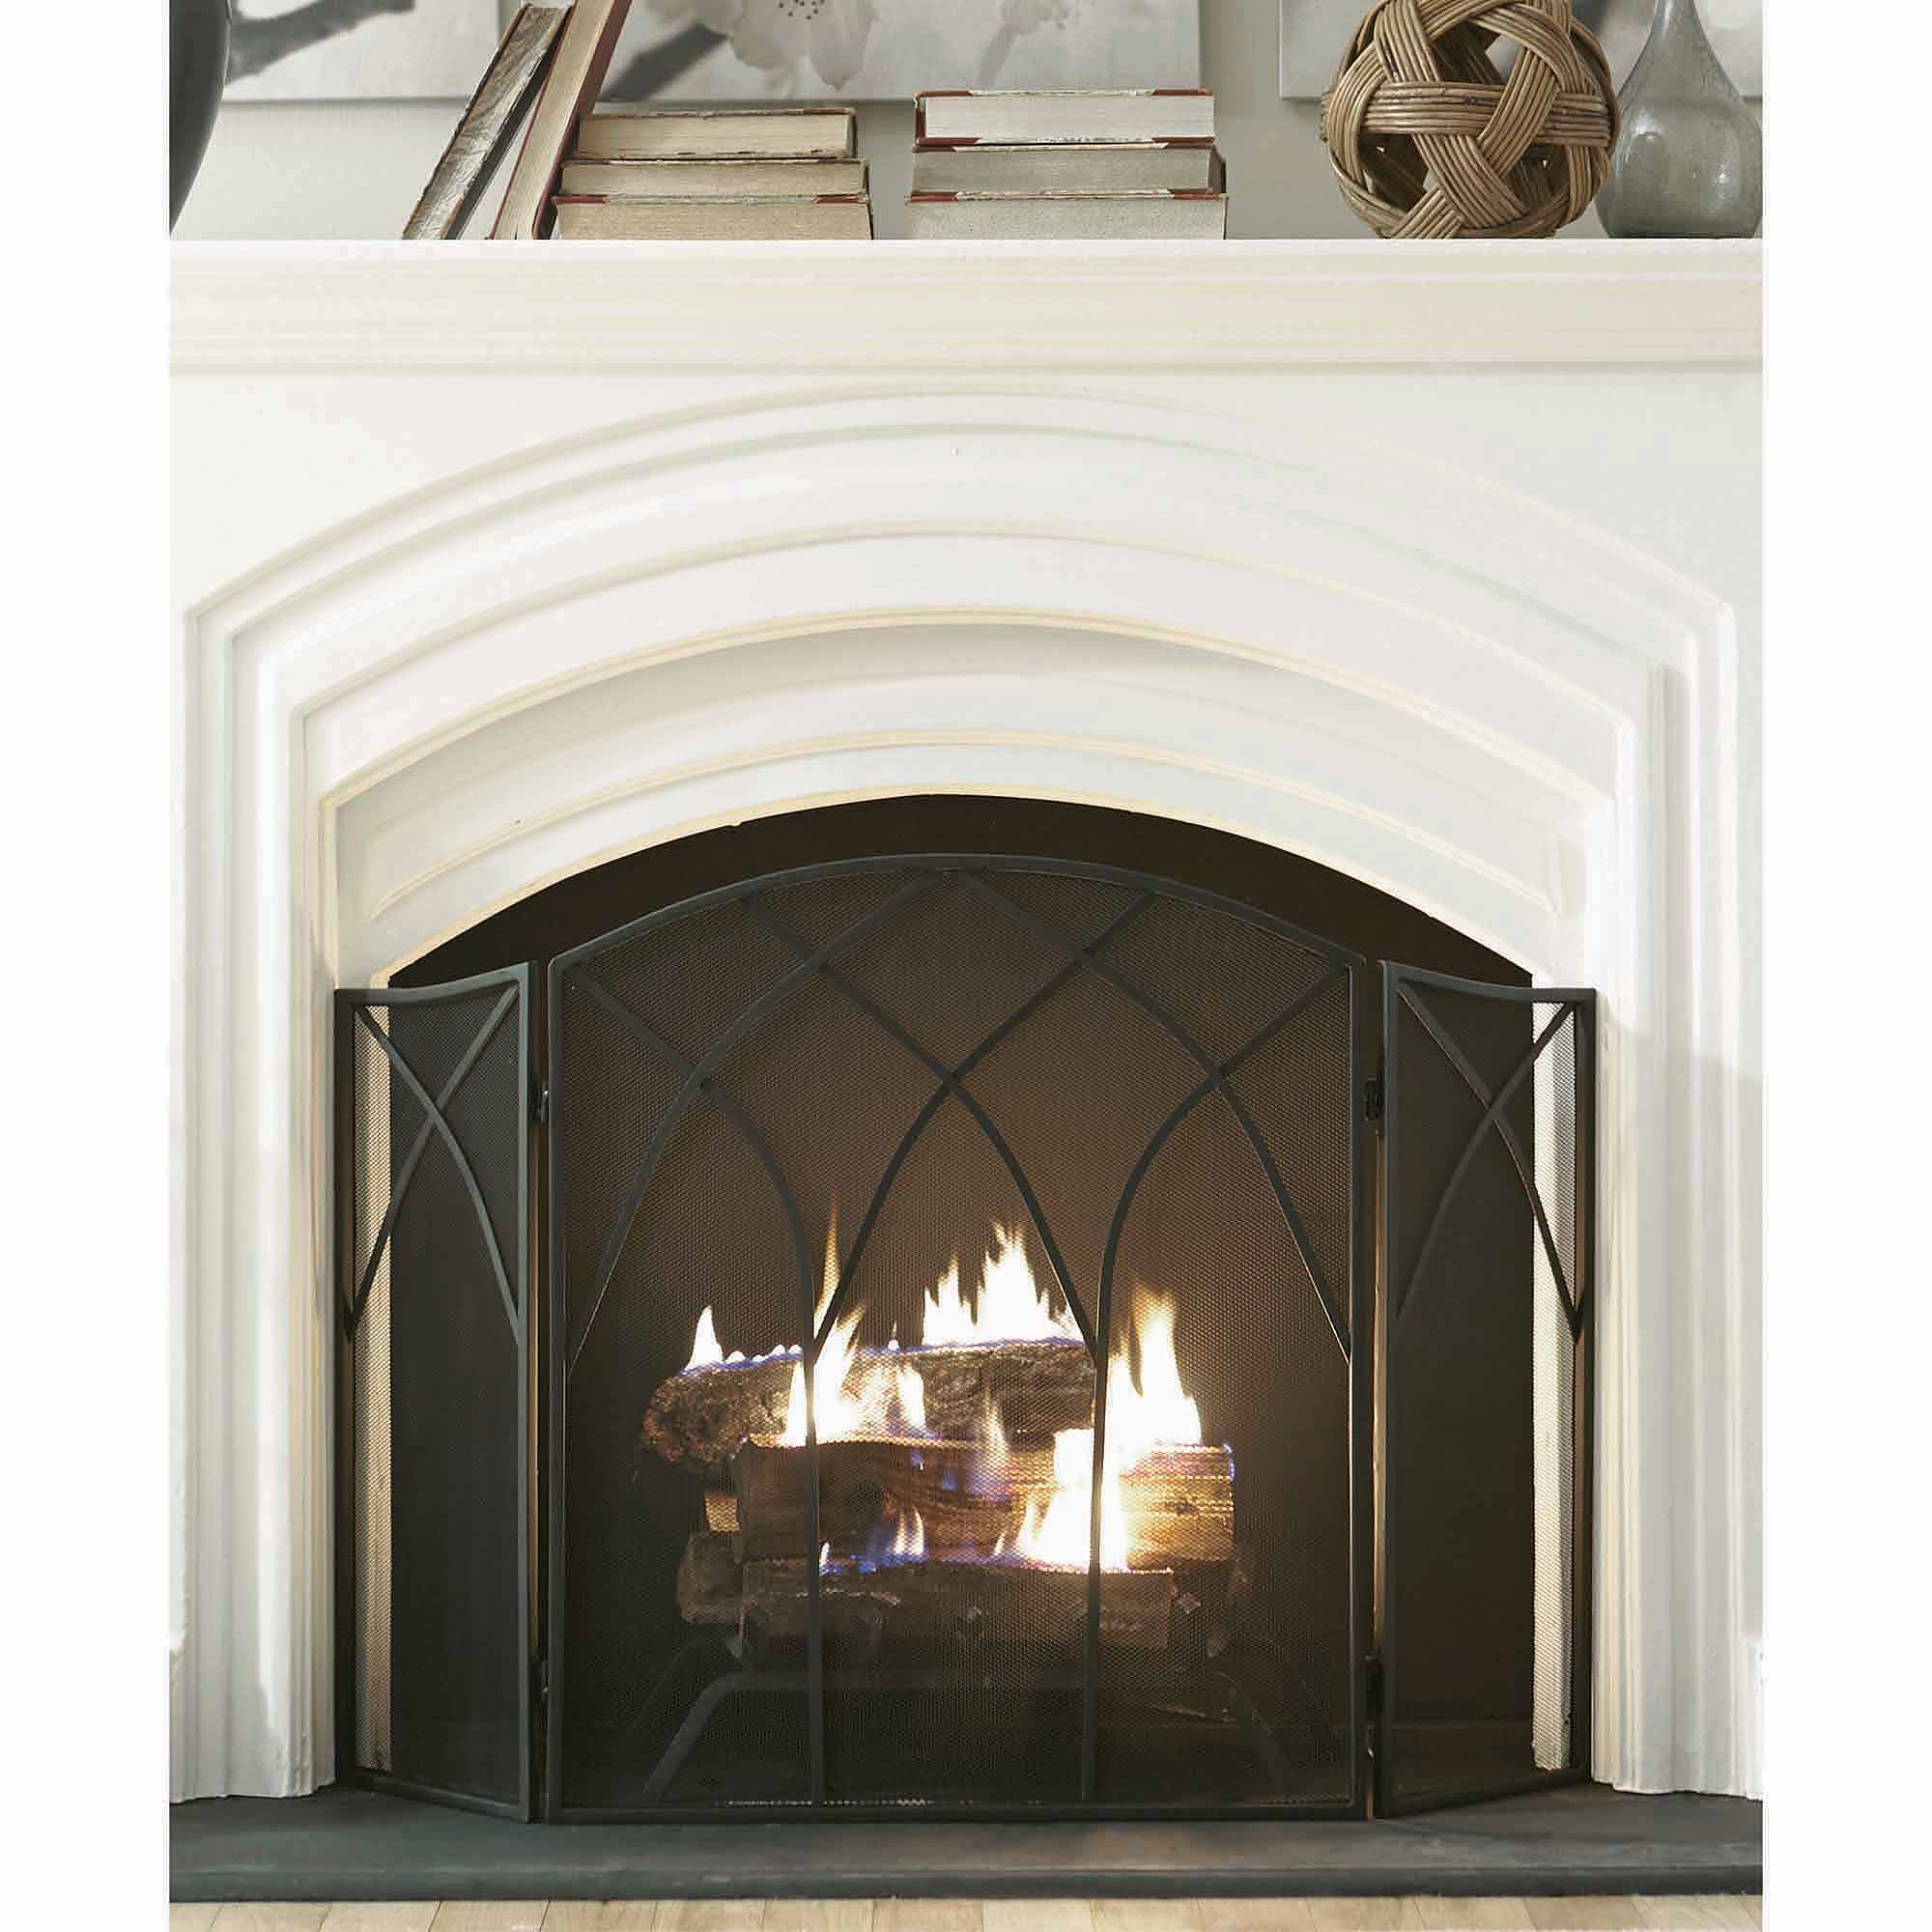 Glass Screen For Gas Fireplace Pleasant Hearth Clairmont Fireplace Screen And Bi Fold Track Free Smoked Glass Doors Black